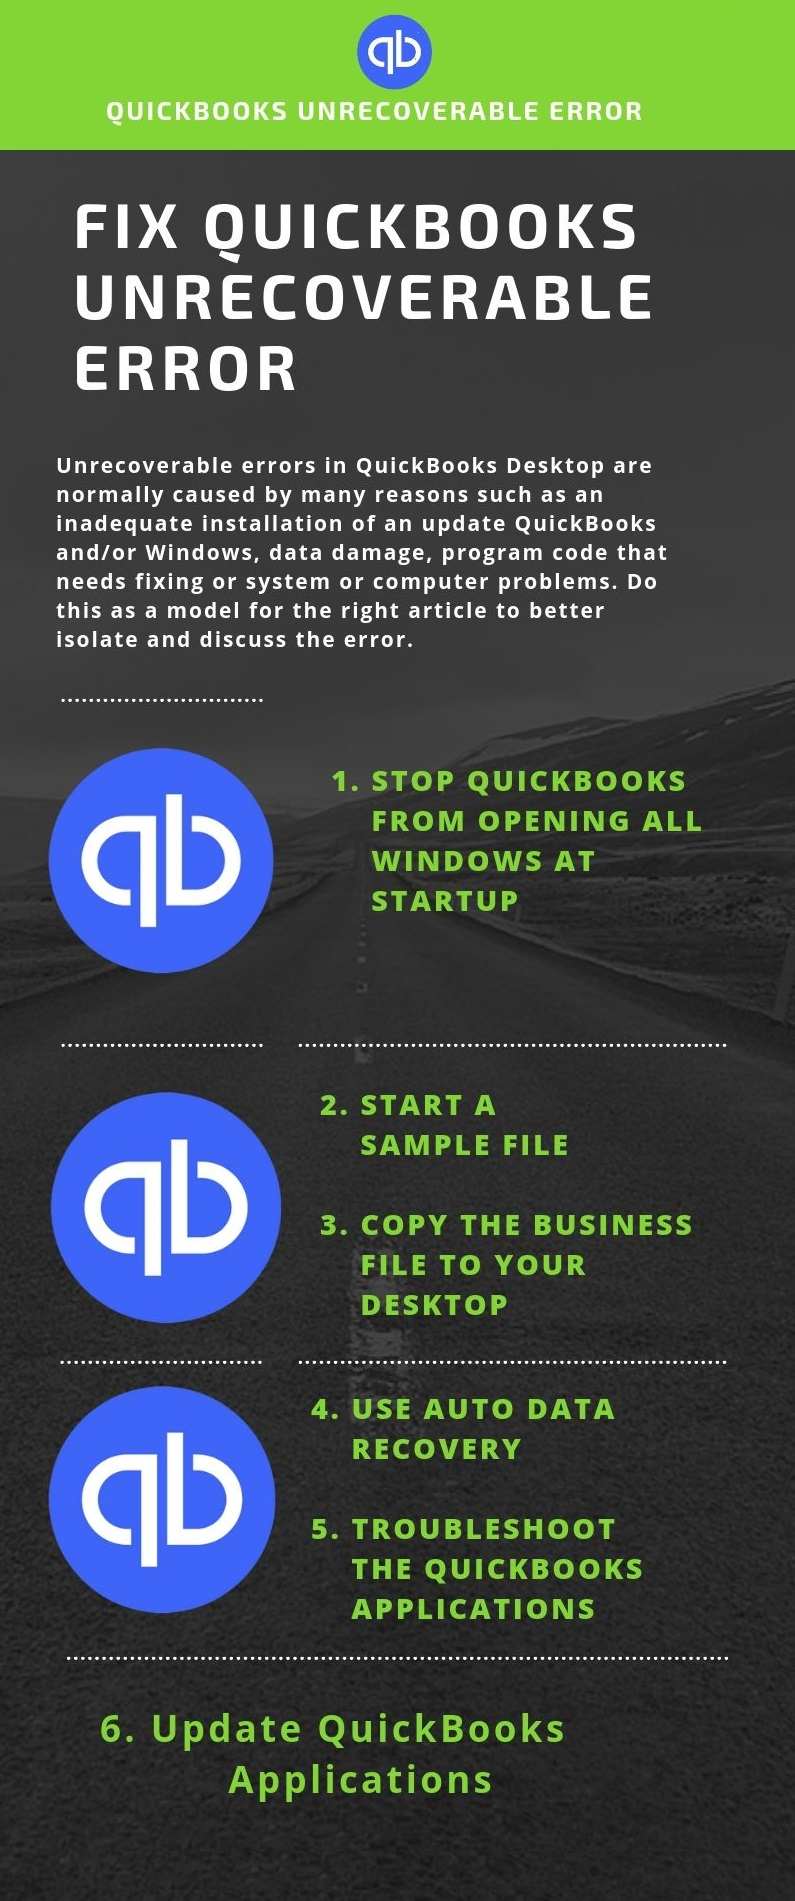 Infographic Image for Solution of QuickBooks Unrecoverable Error